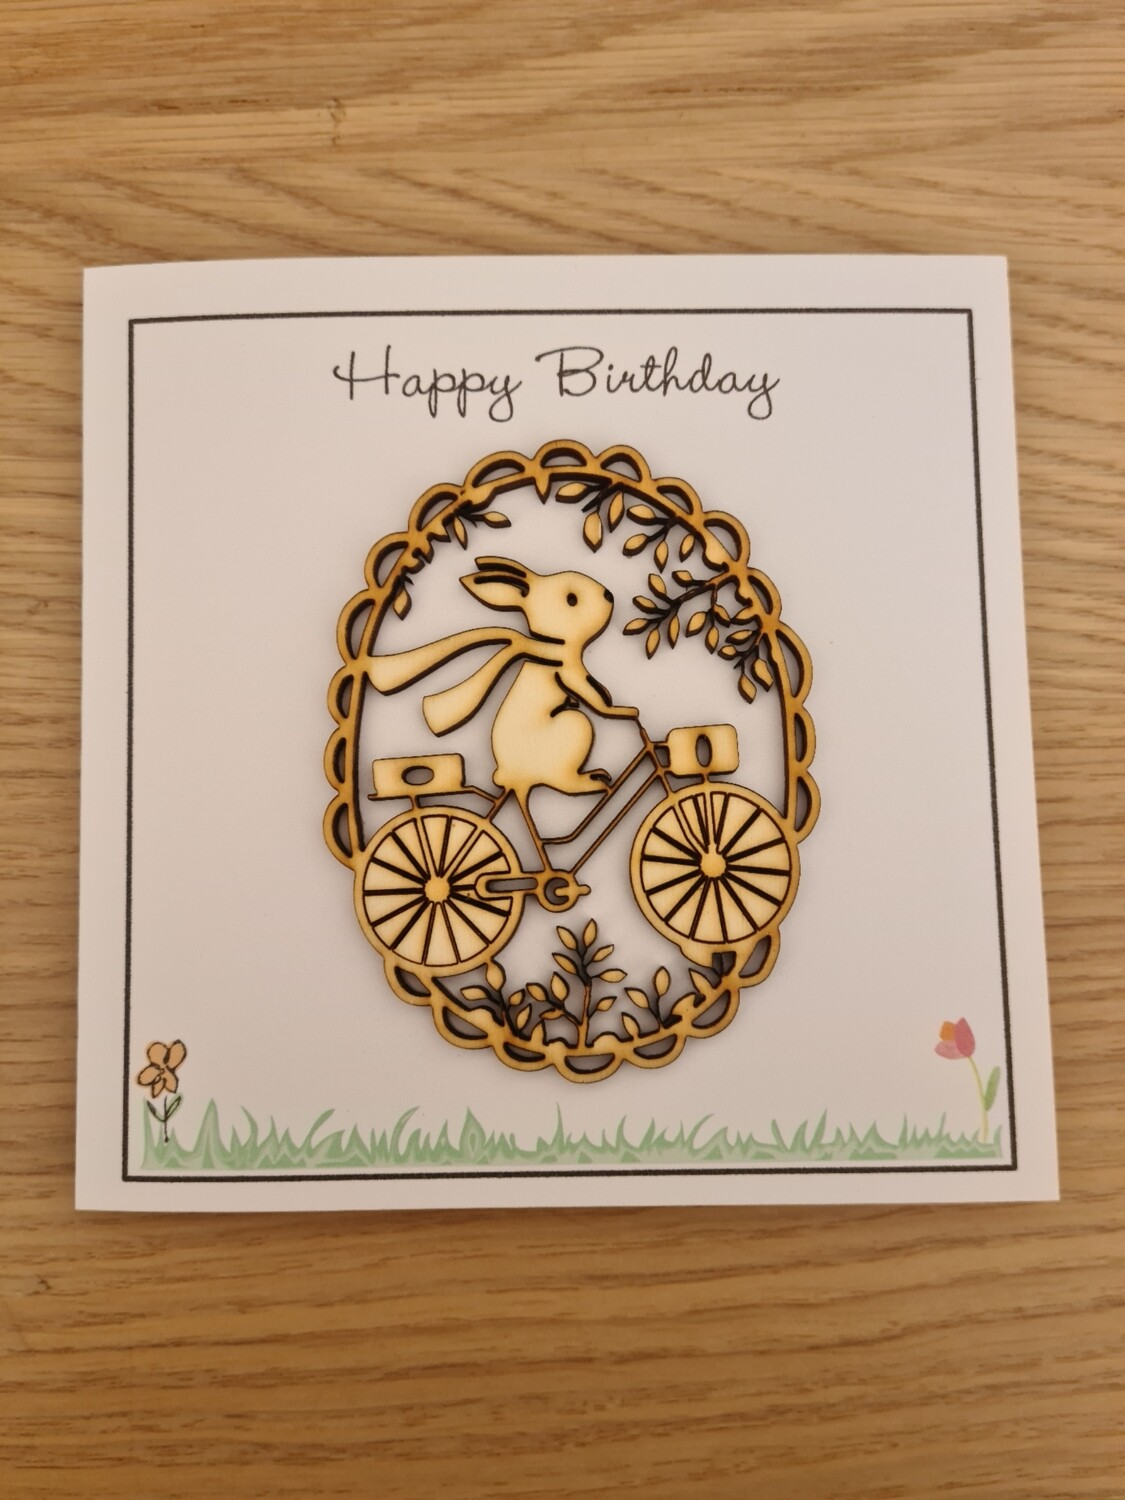 Happy Birthday Bunny on a Bike Card